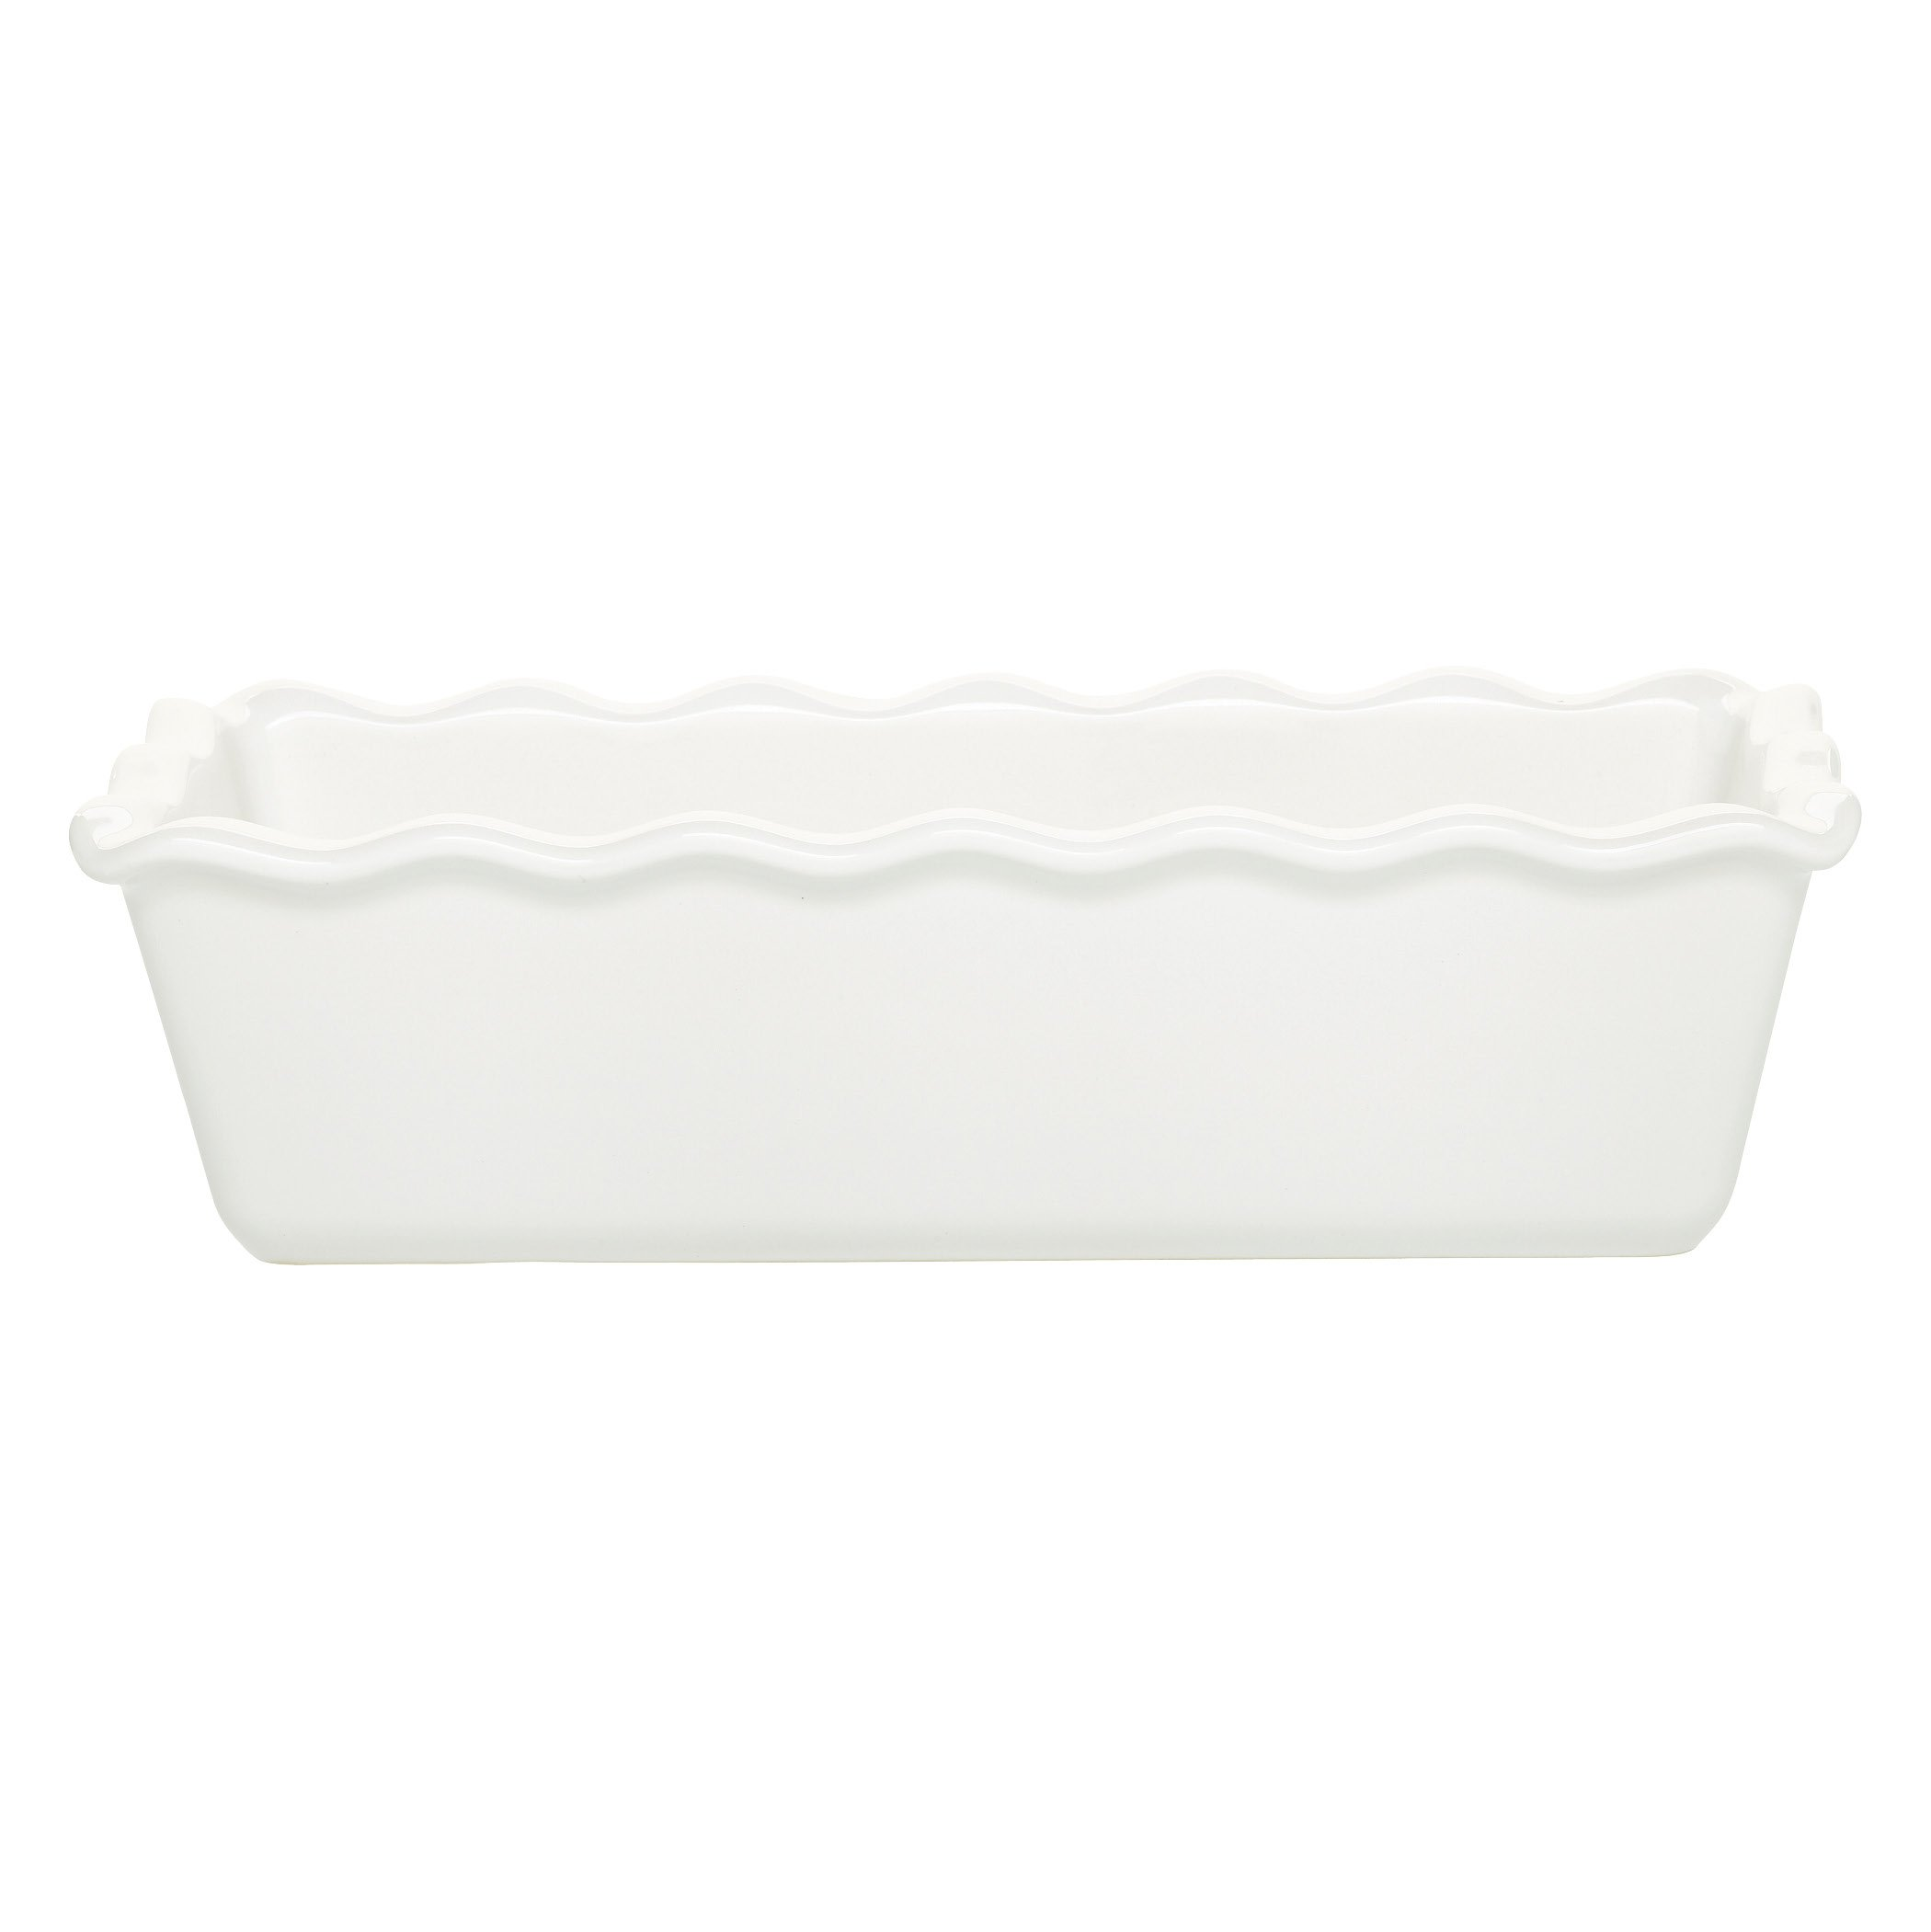 Emile Henry Made In France Ruffled Loaf Pan, 9'' by 5'' by 3'', Flour White